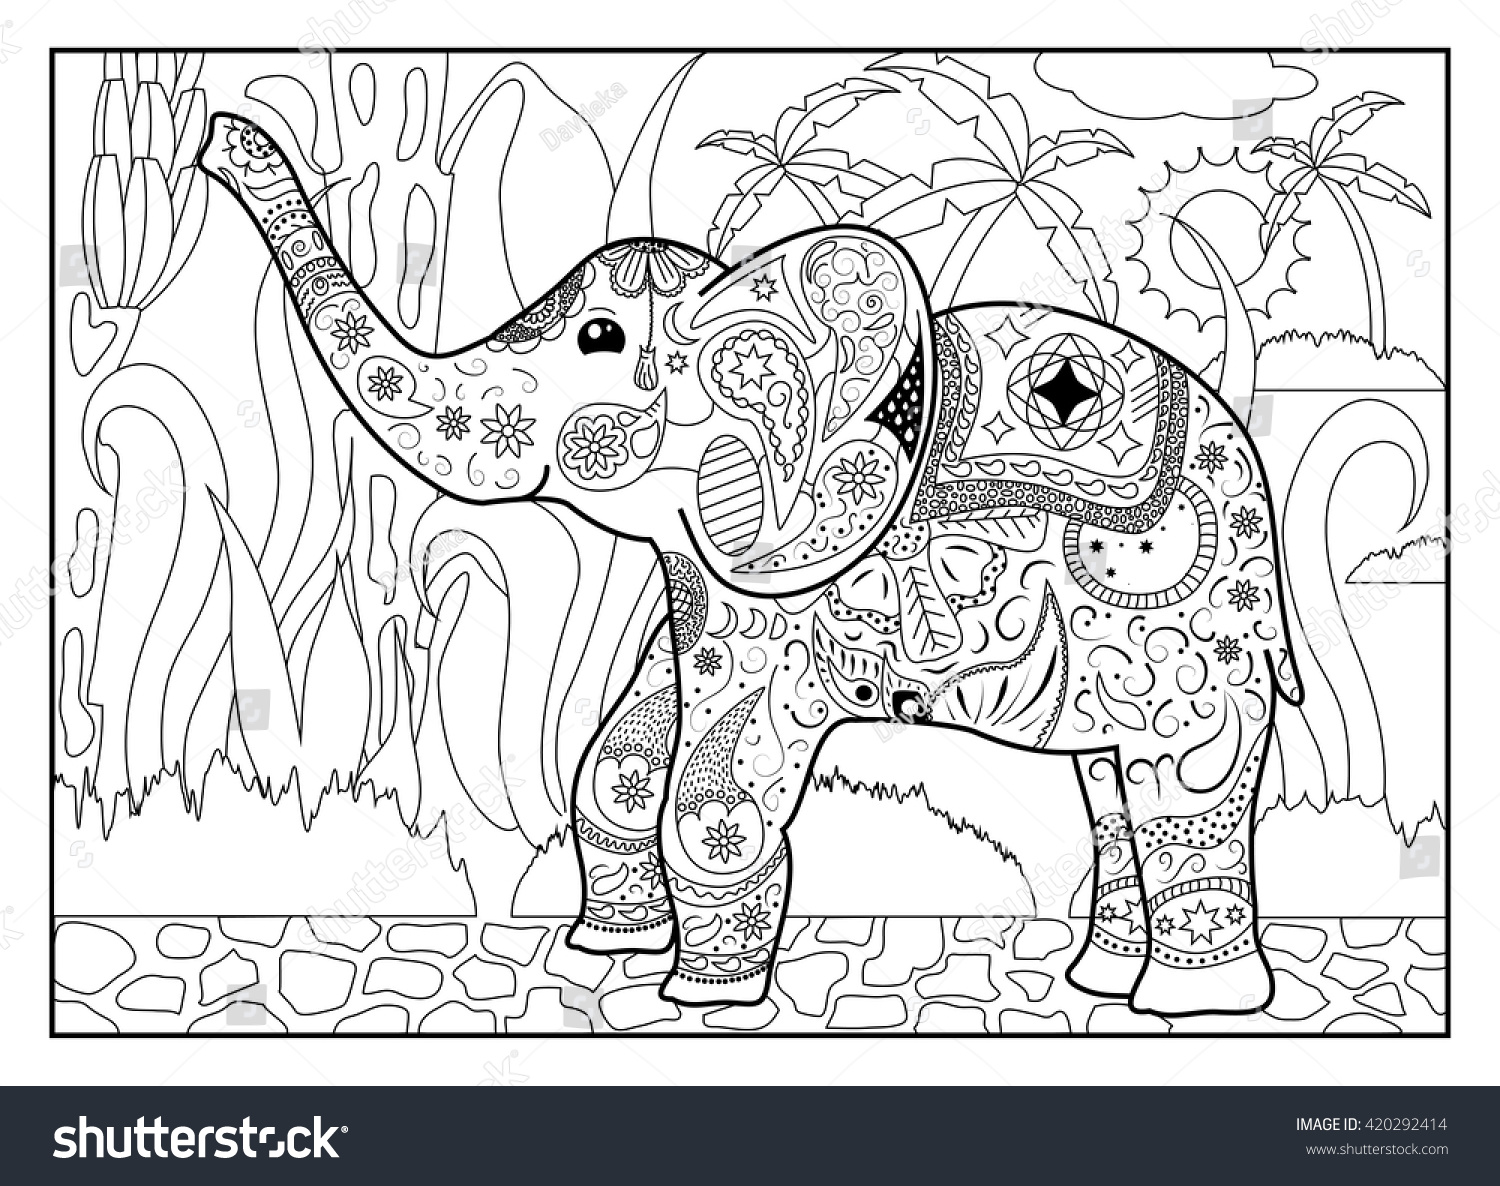 Elephant Jungle Coloring Page Mandala Style Stock Vector